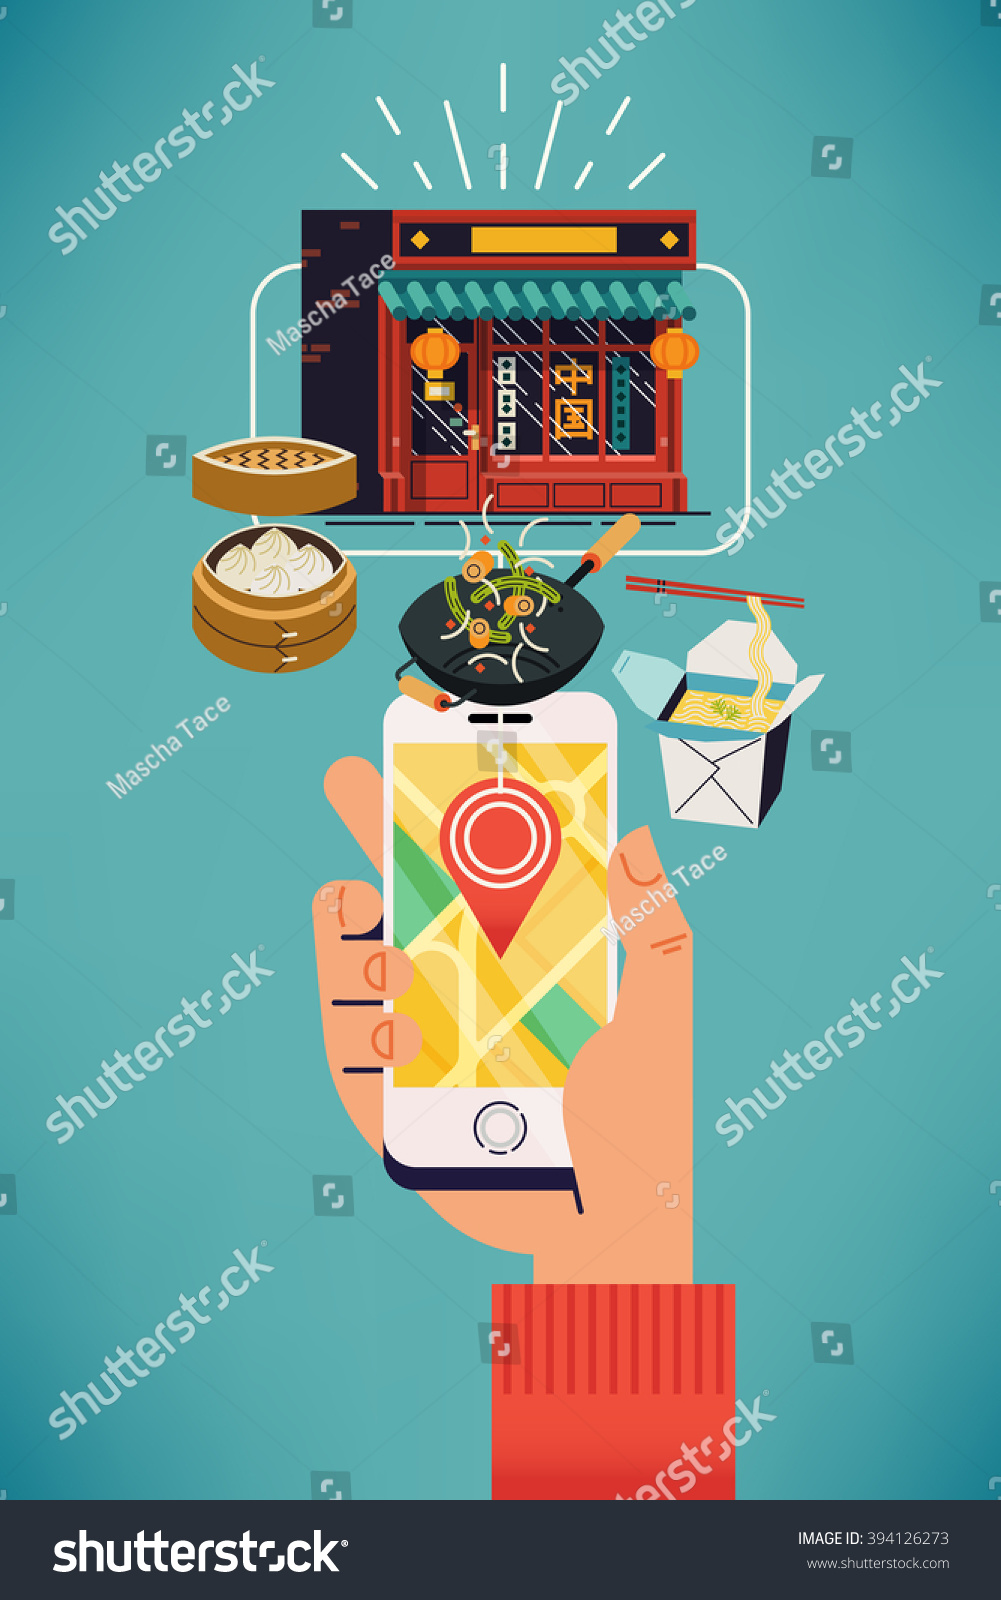 Find Oriental Food Near You Cool Stock Vector 394126273 - Shutterstock